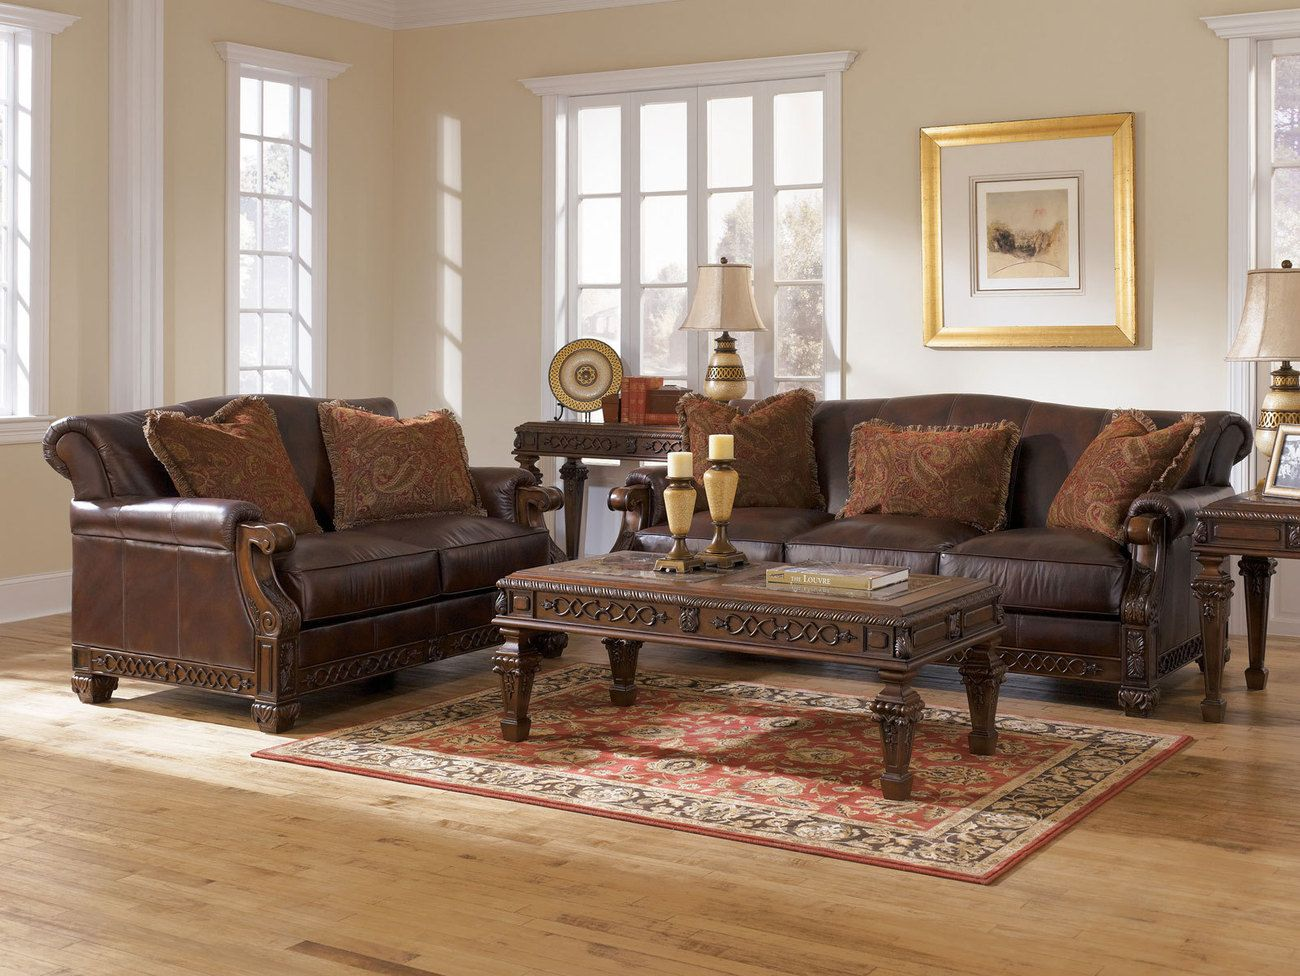 wood trim brown genuine leather sofa couch set living room